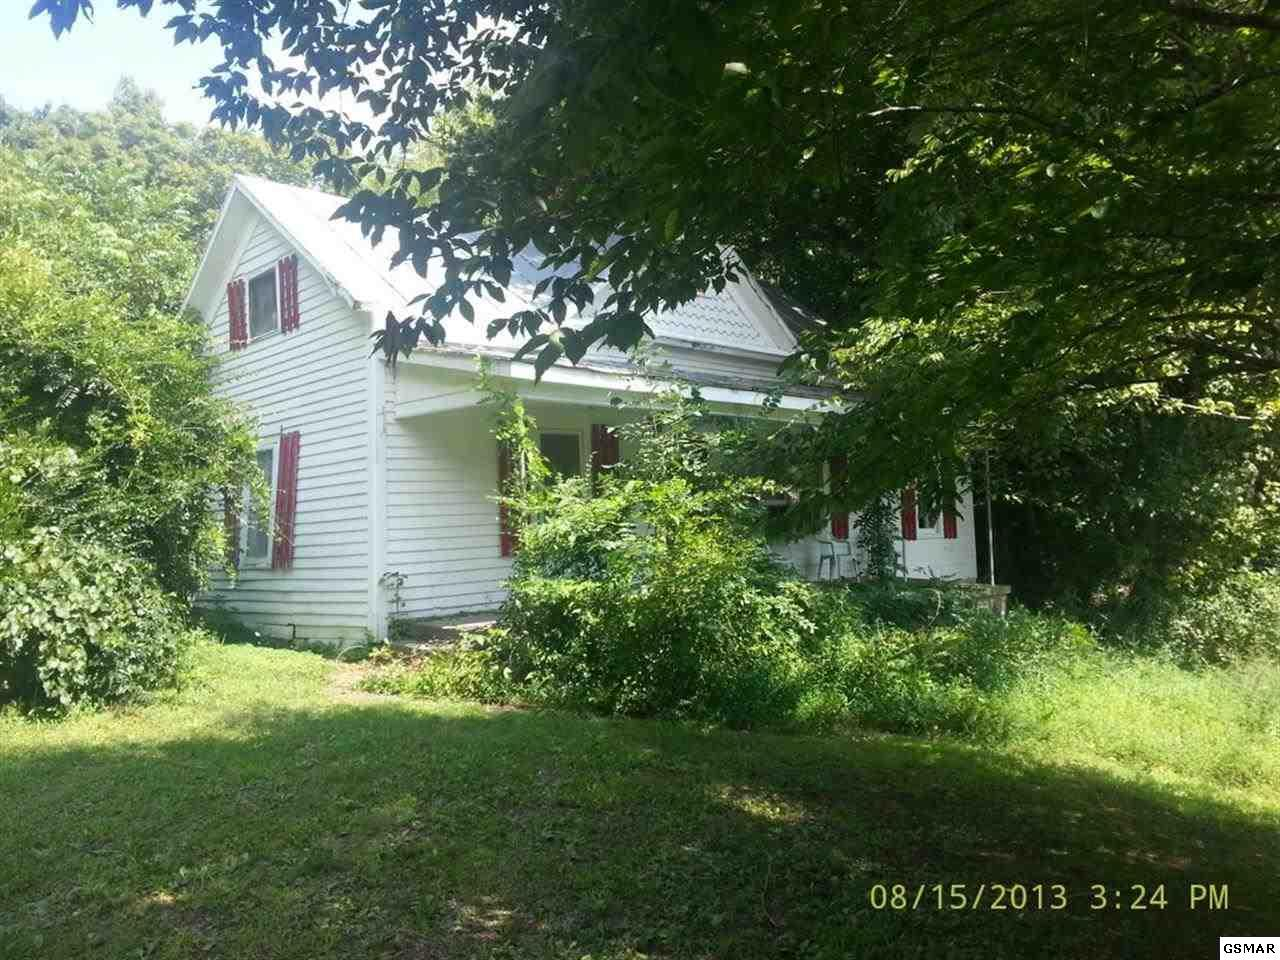 Colonial Real Estate : Goose gap rd sevierville tn